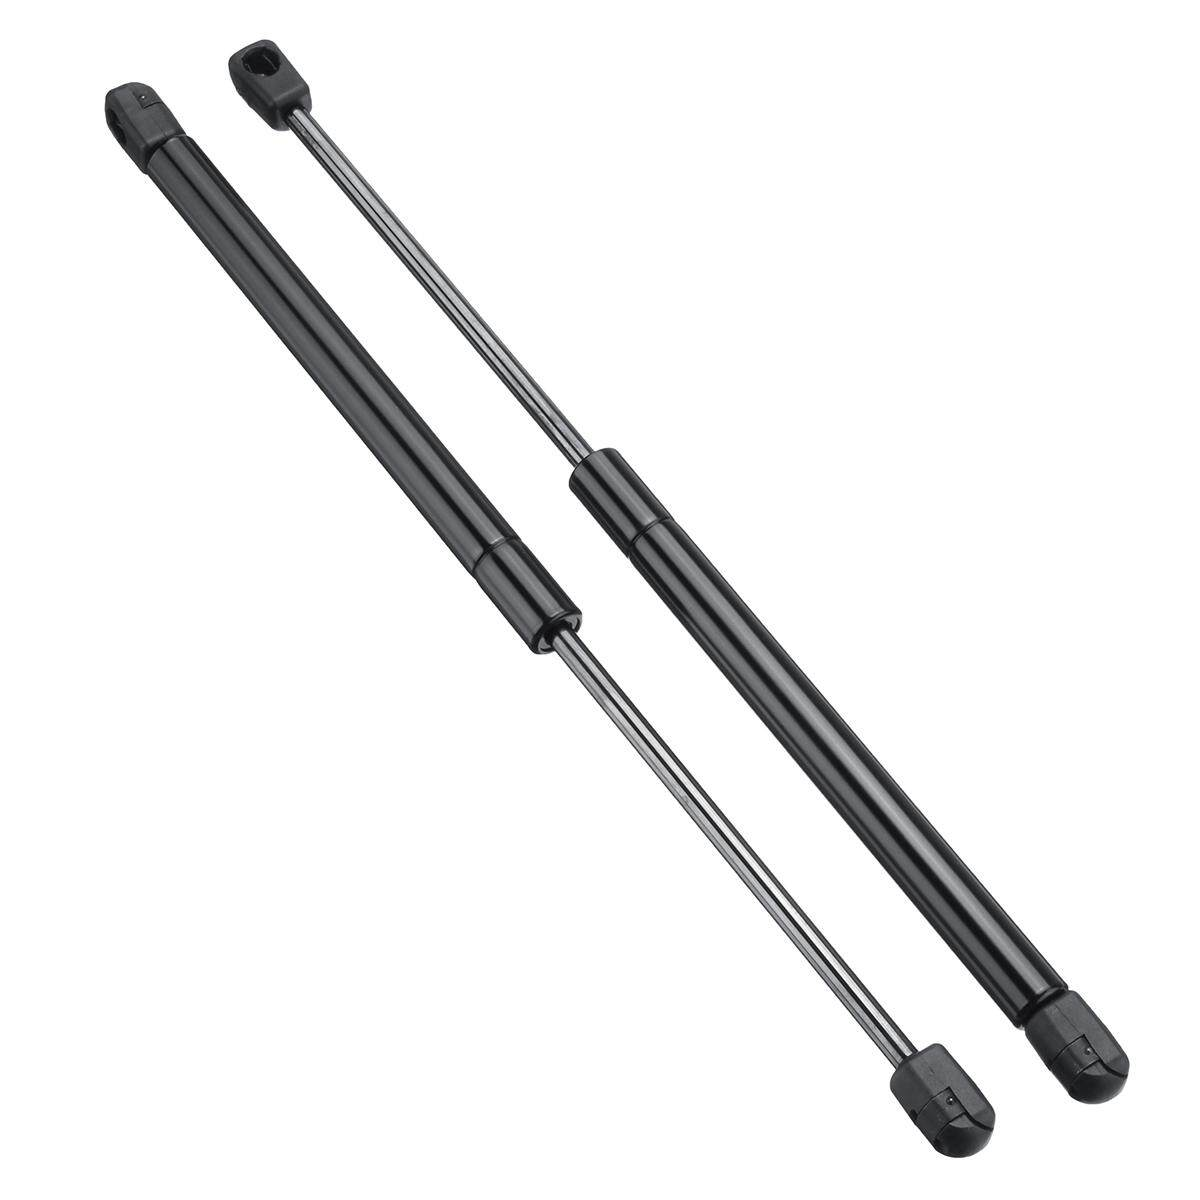 1 pair FOR LAND ROVER RANGE ROVER P38 4X4 1995-02 GAS TAILGATE BOOT SUPPORT STRUTS - intl